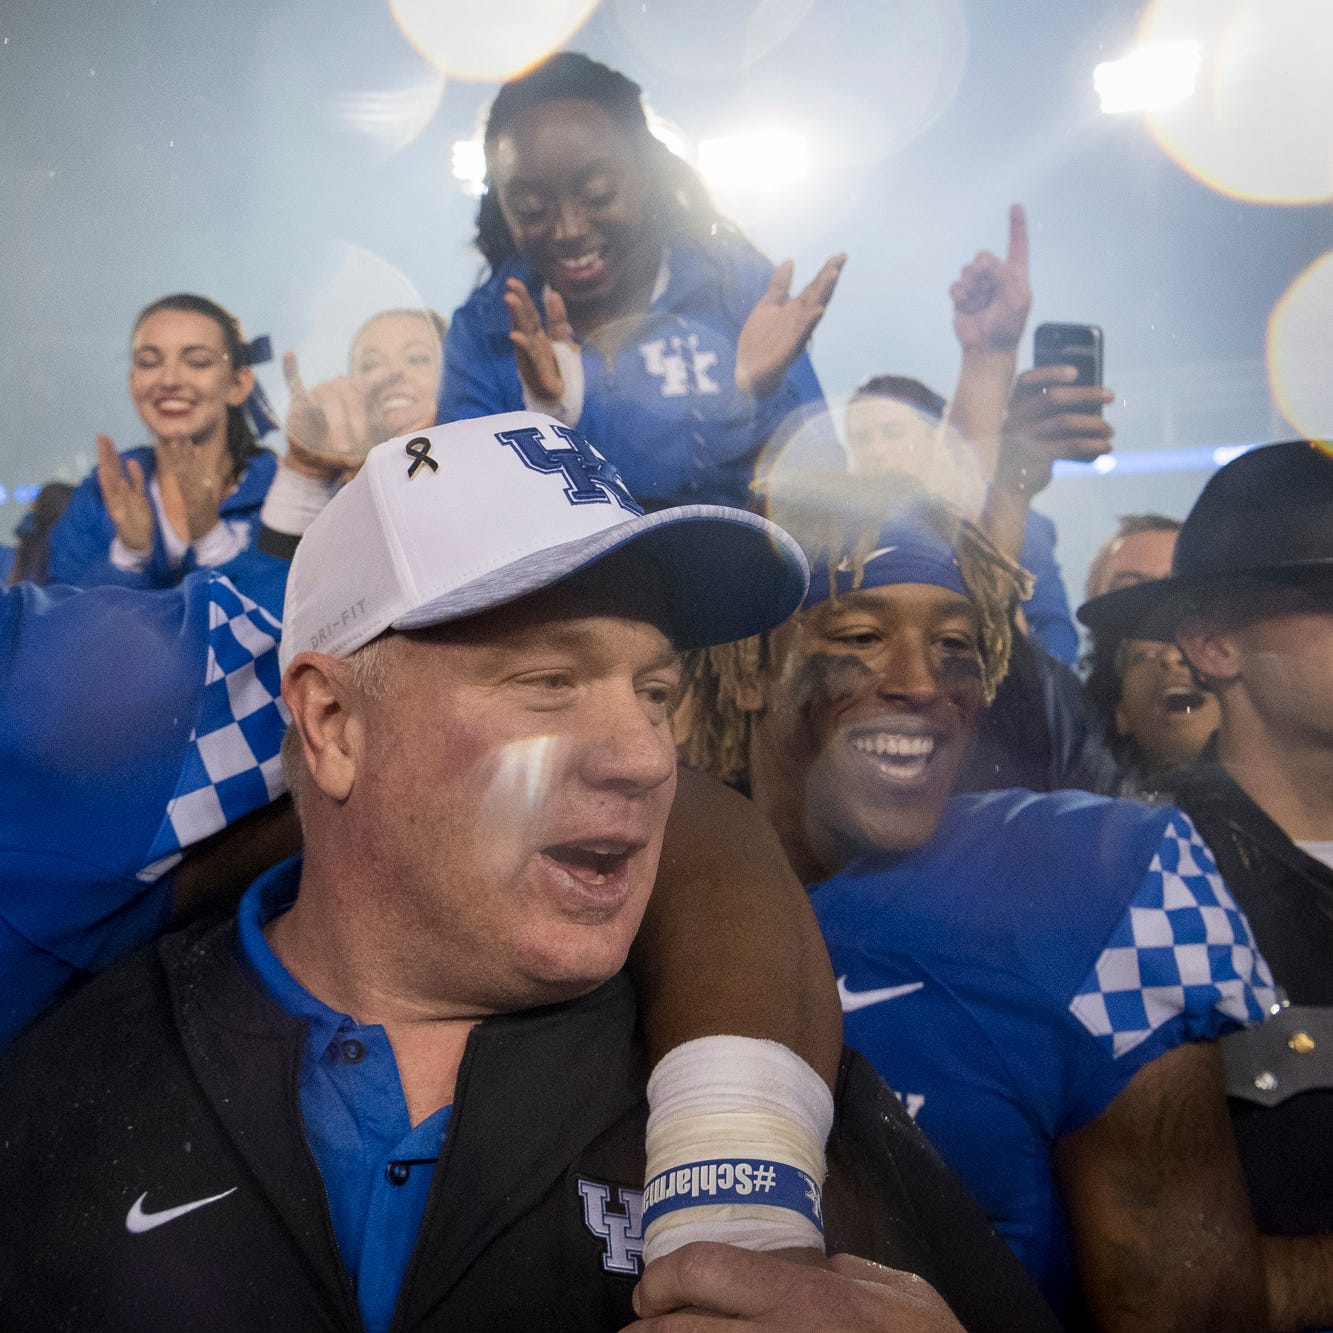 UK fined $100,000 for fans rushing the field after Mississippi State win